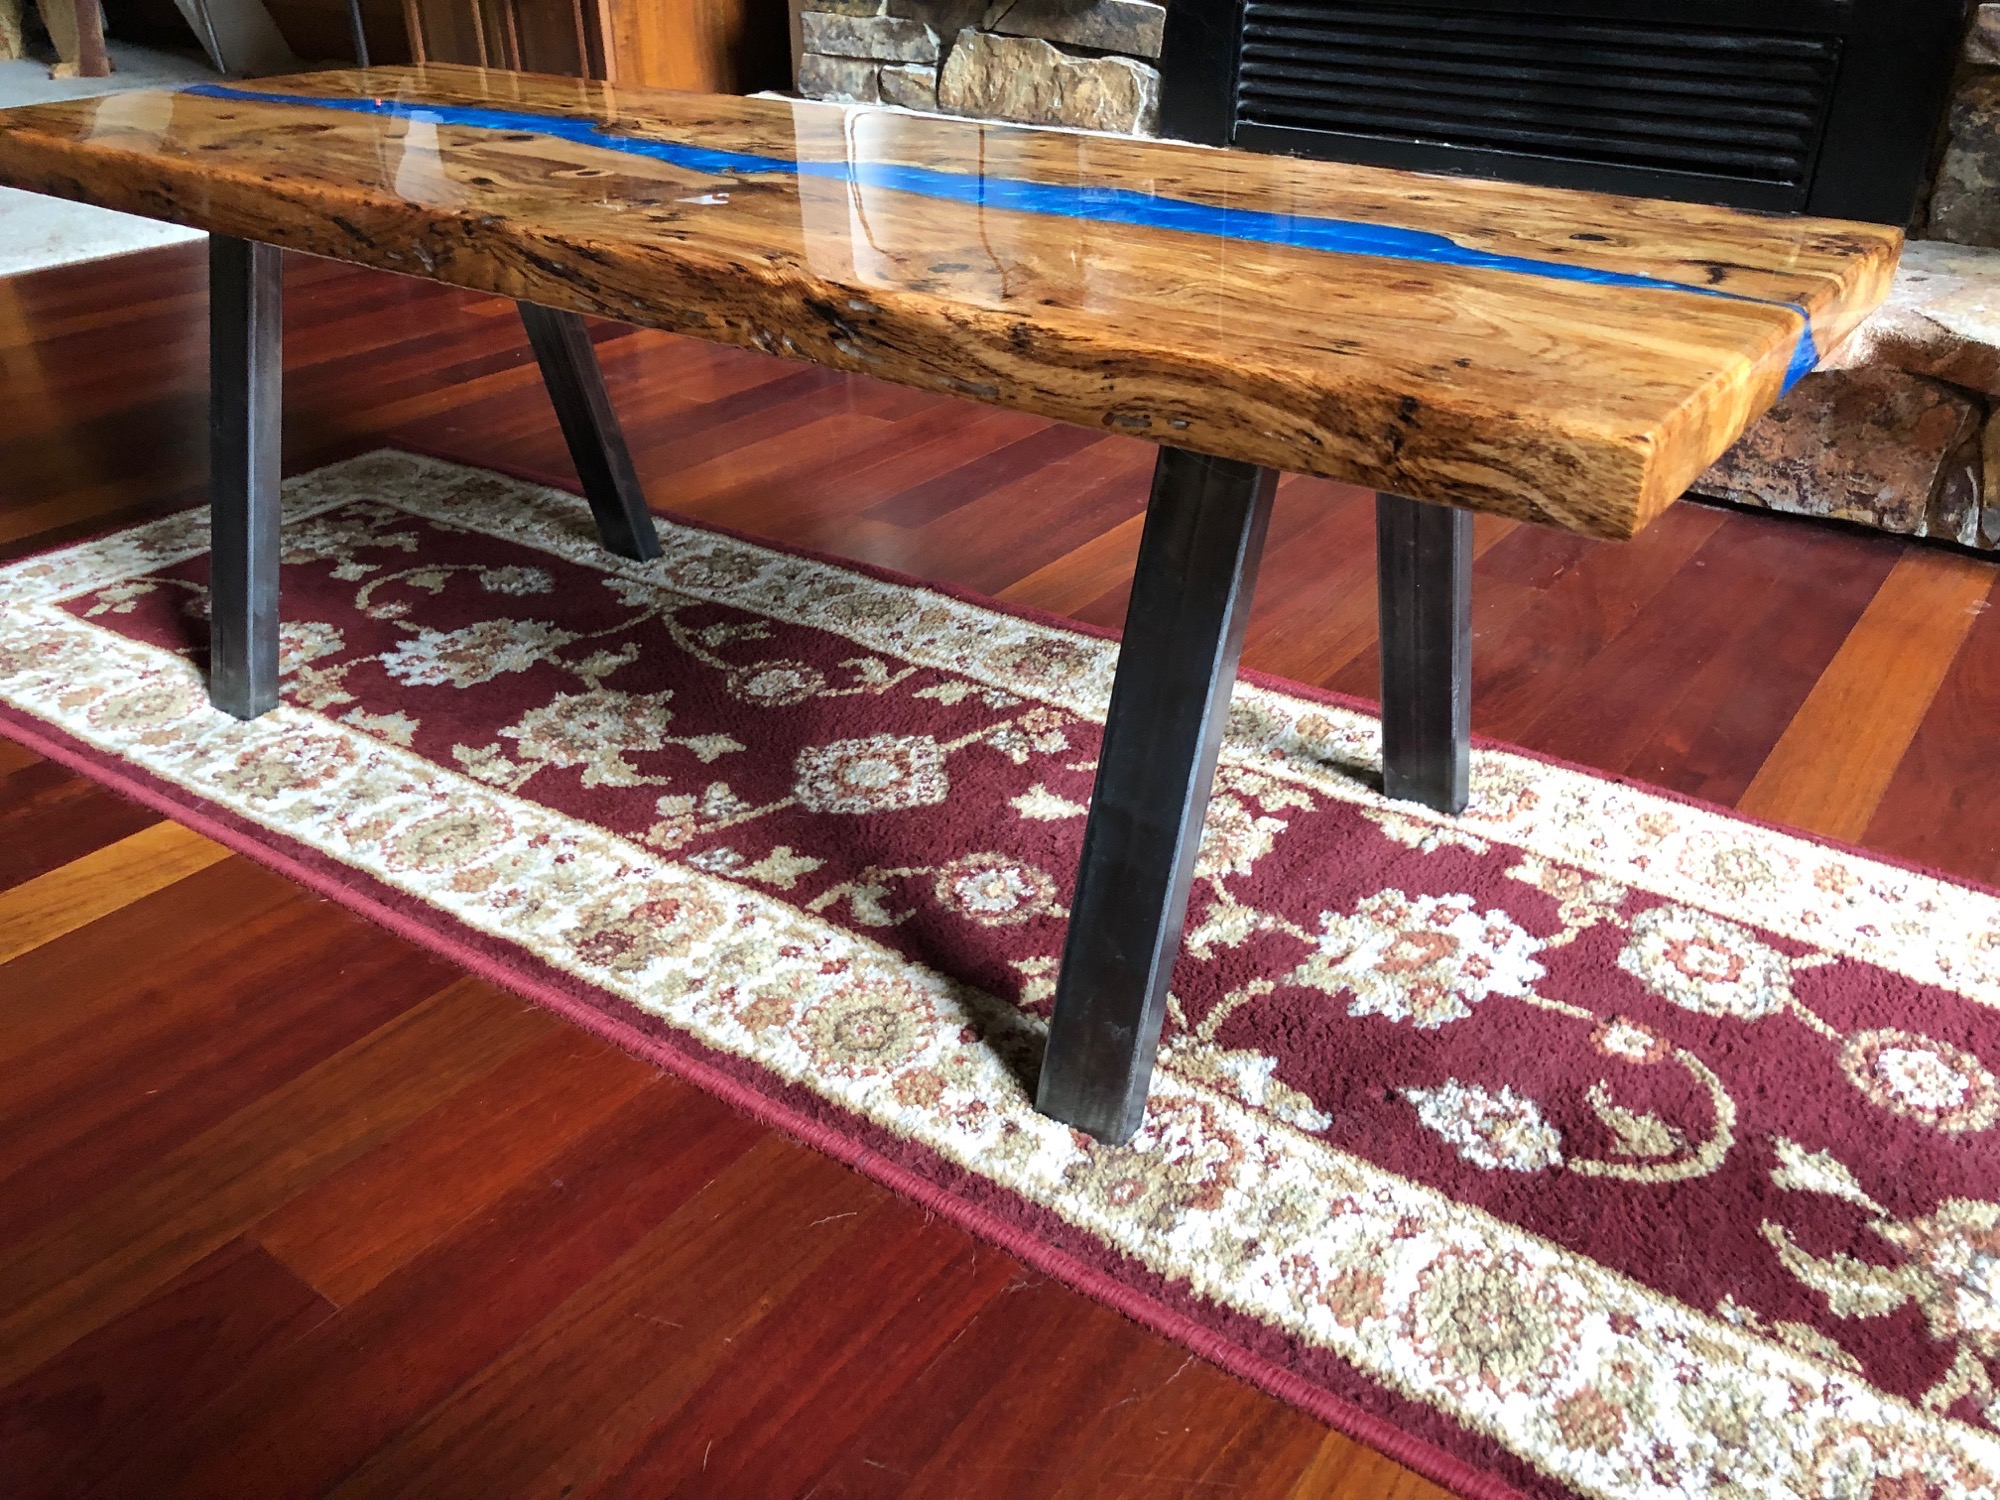 Blue river coffee table - side view